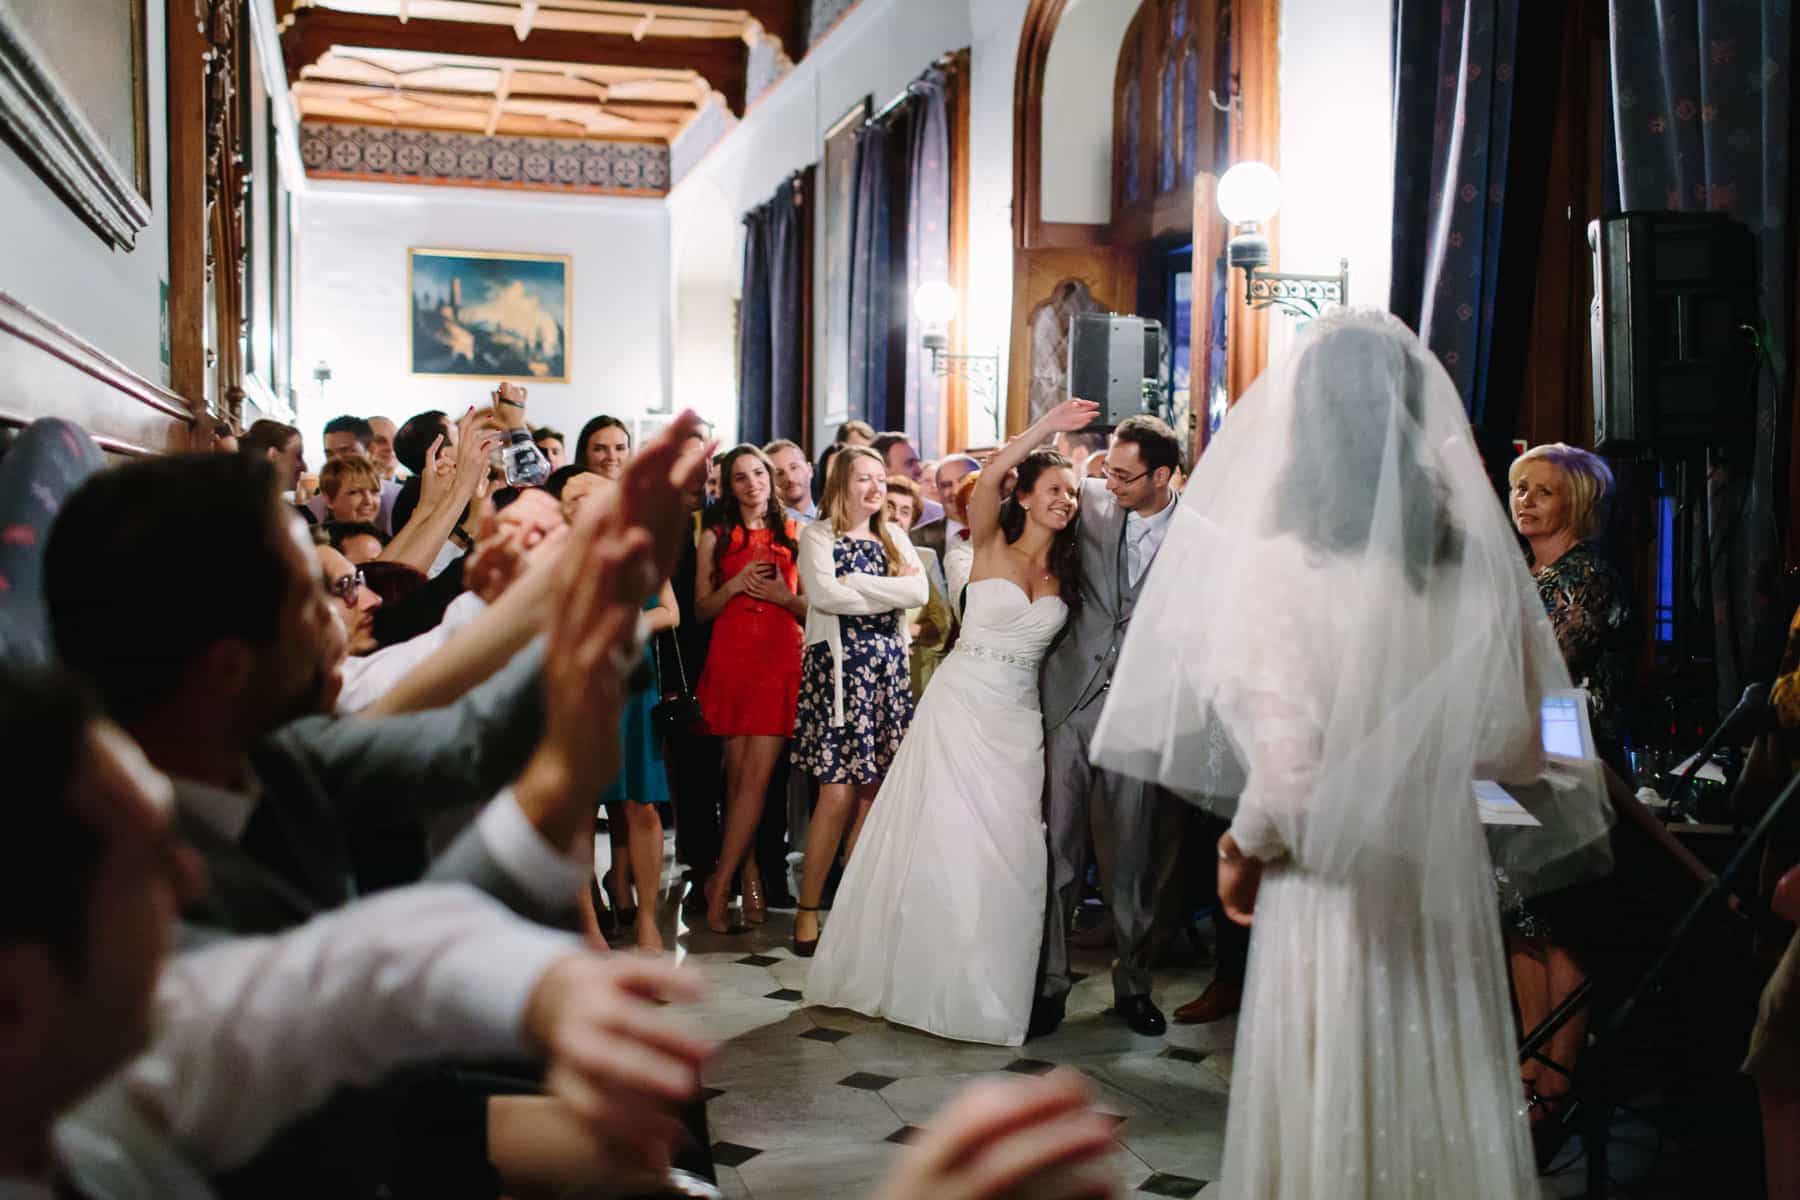 Bride and groom sway along with their guests to their MCs signing in this grand hallway at a destination wedding in Castello Dal Pozzo, Italy.